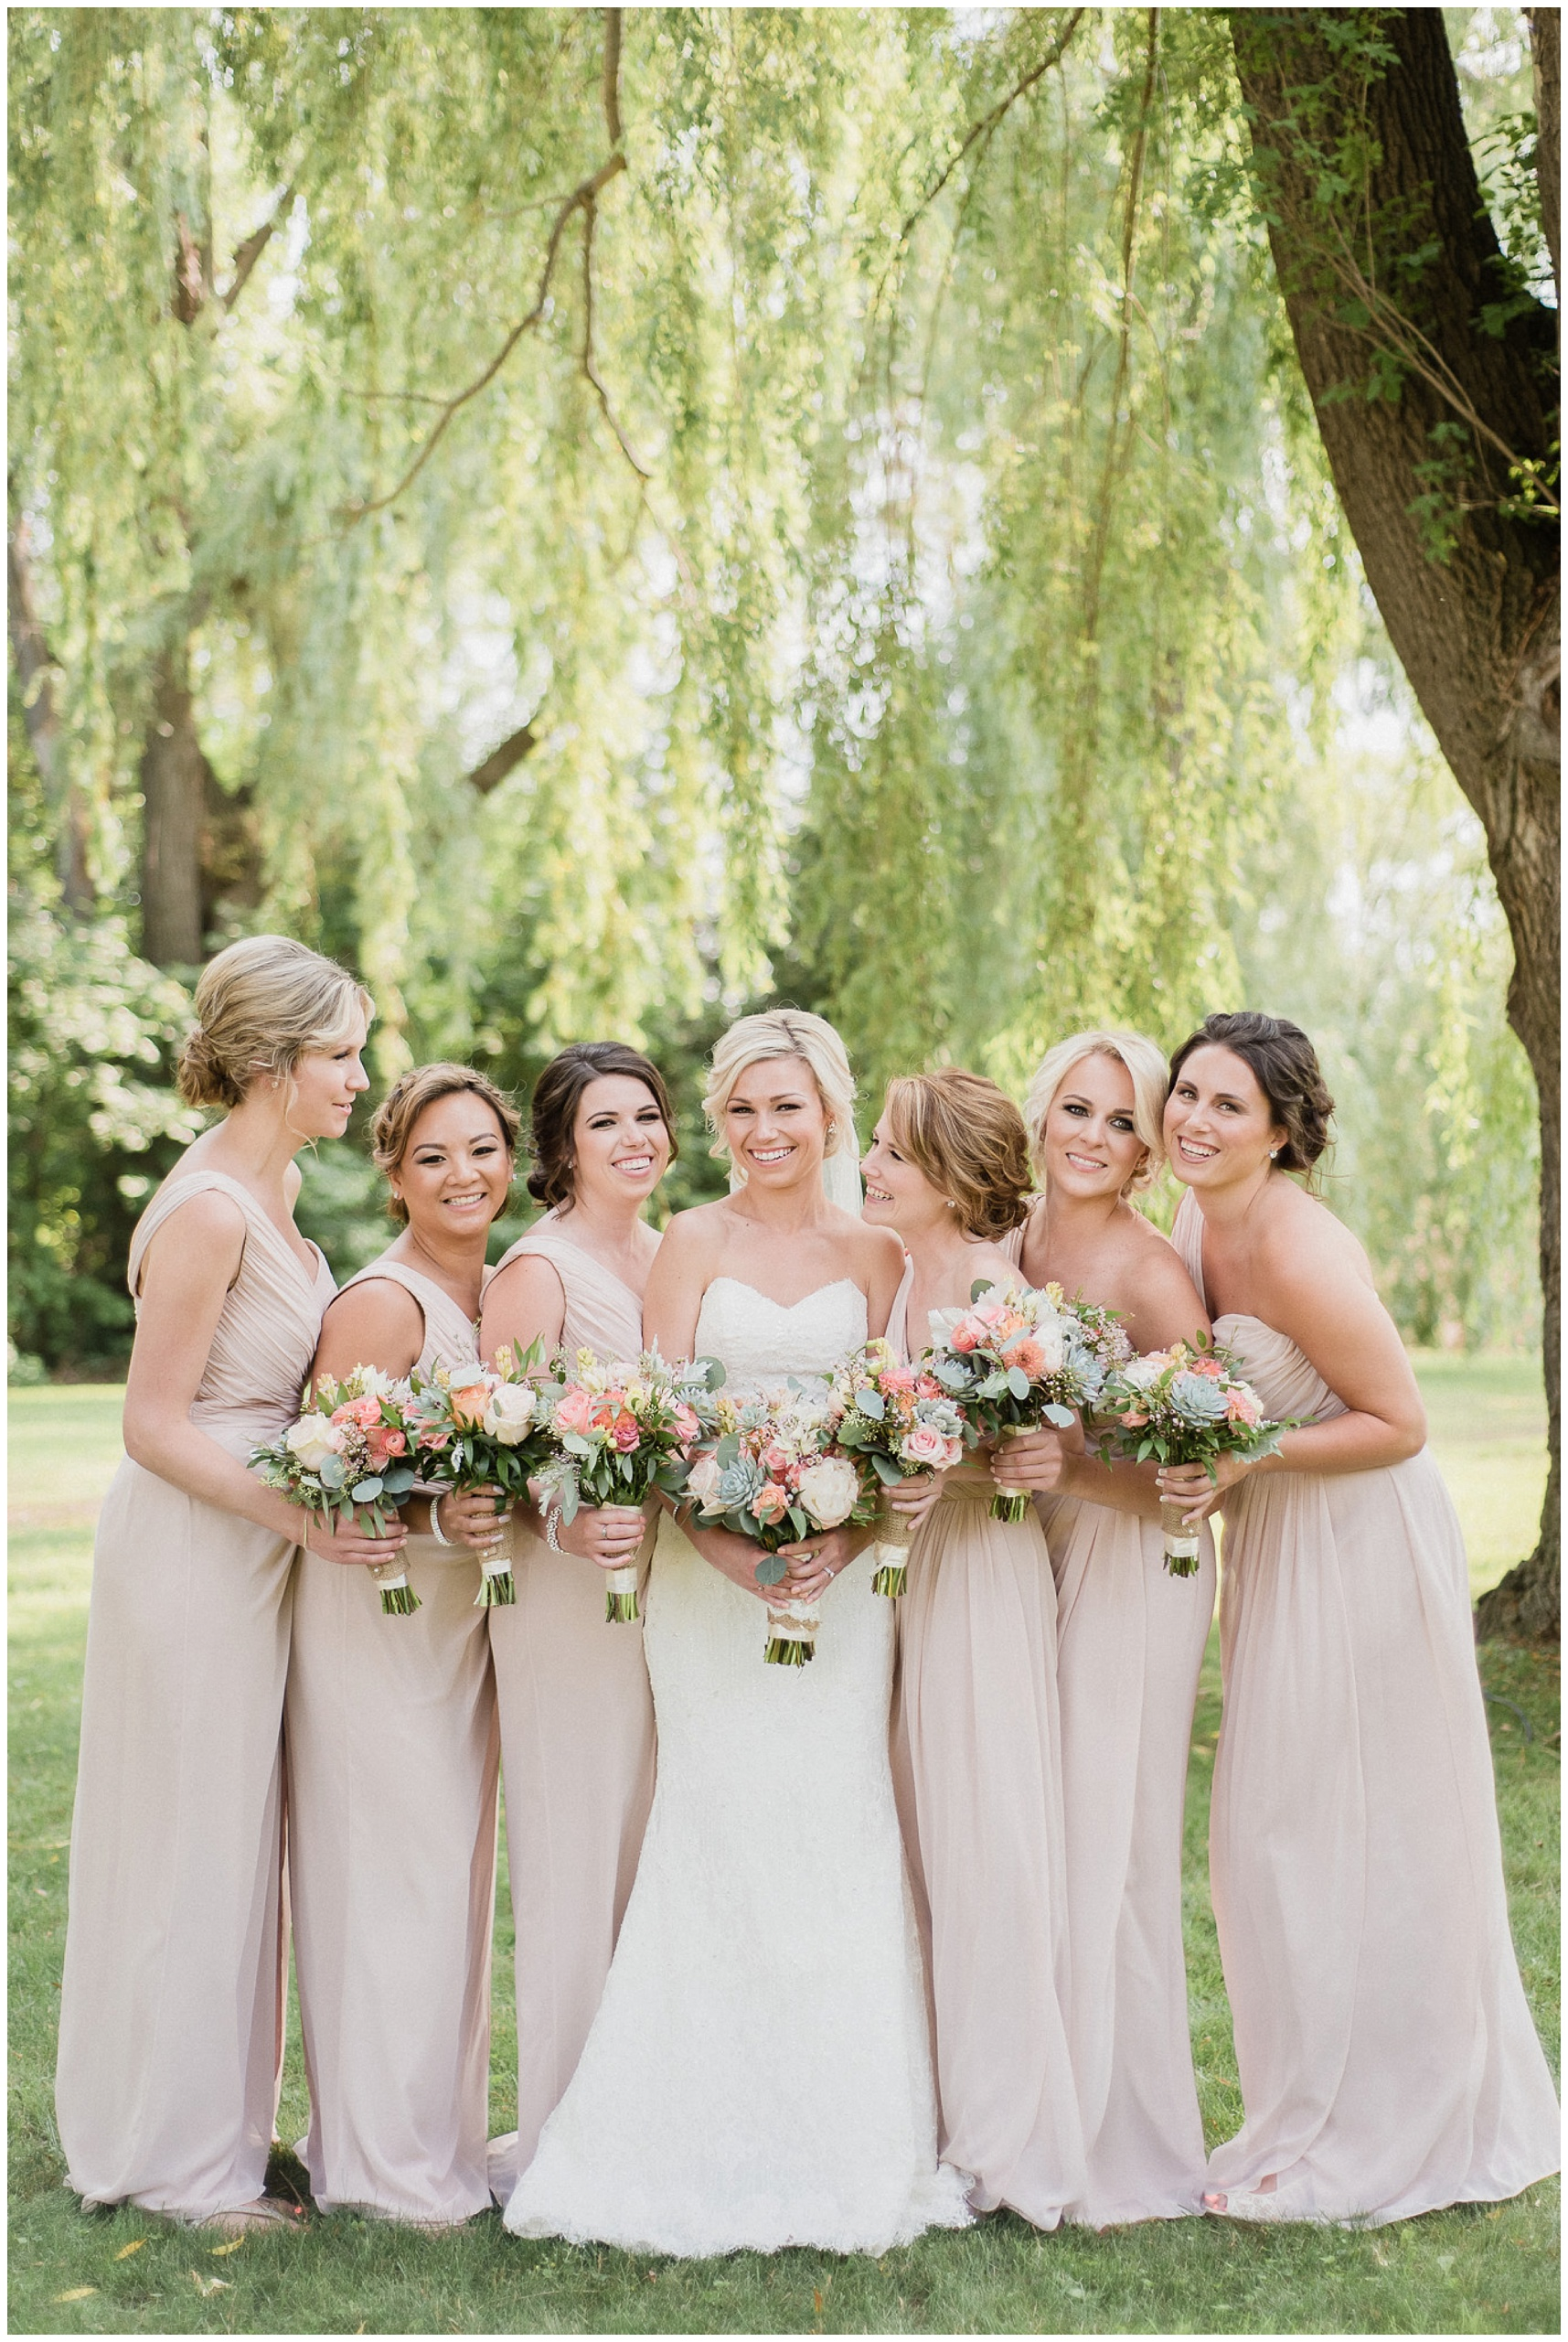 Candid bridesmaids photo with blush pink one shouldered, full length bridesmaid dresses. Photographed by Jenn Kavanagh Photography